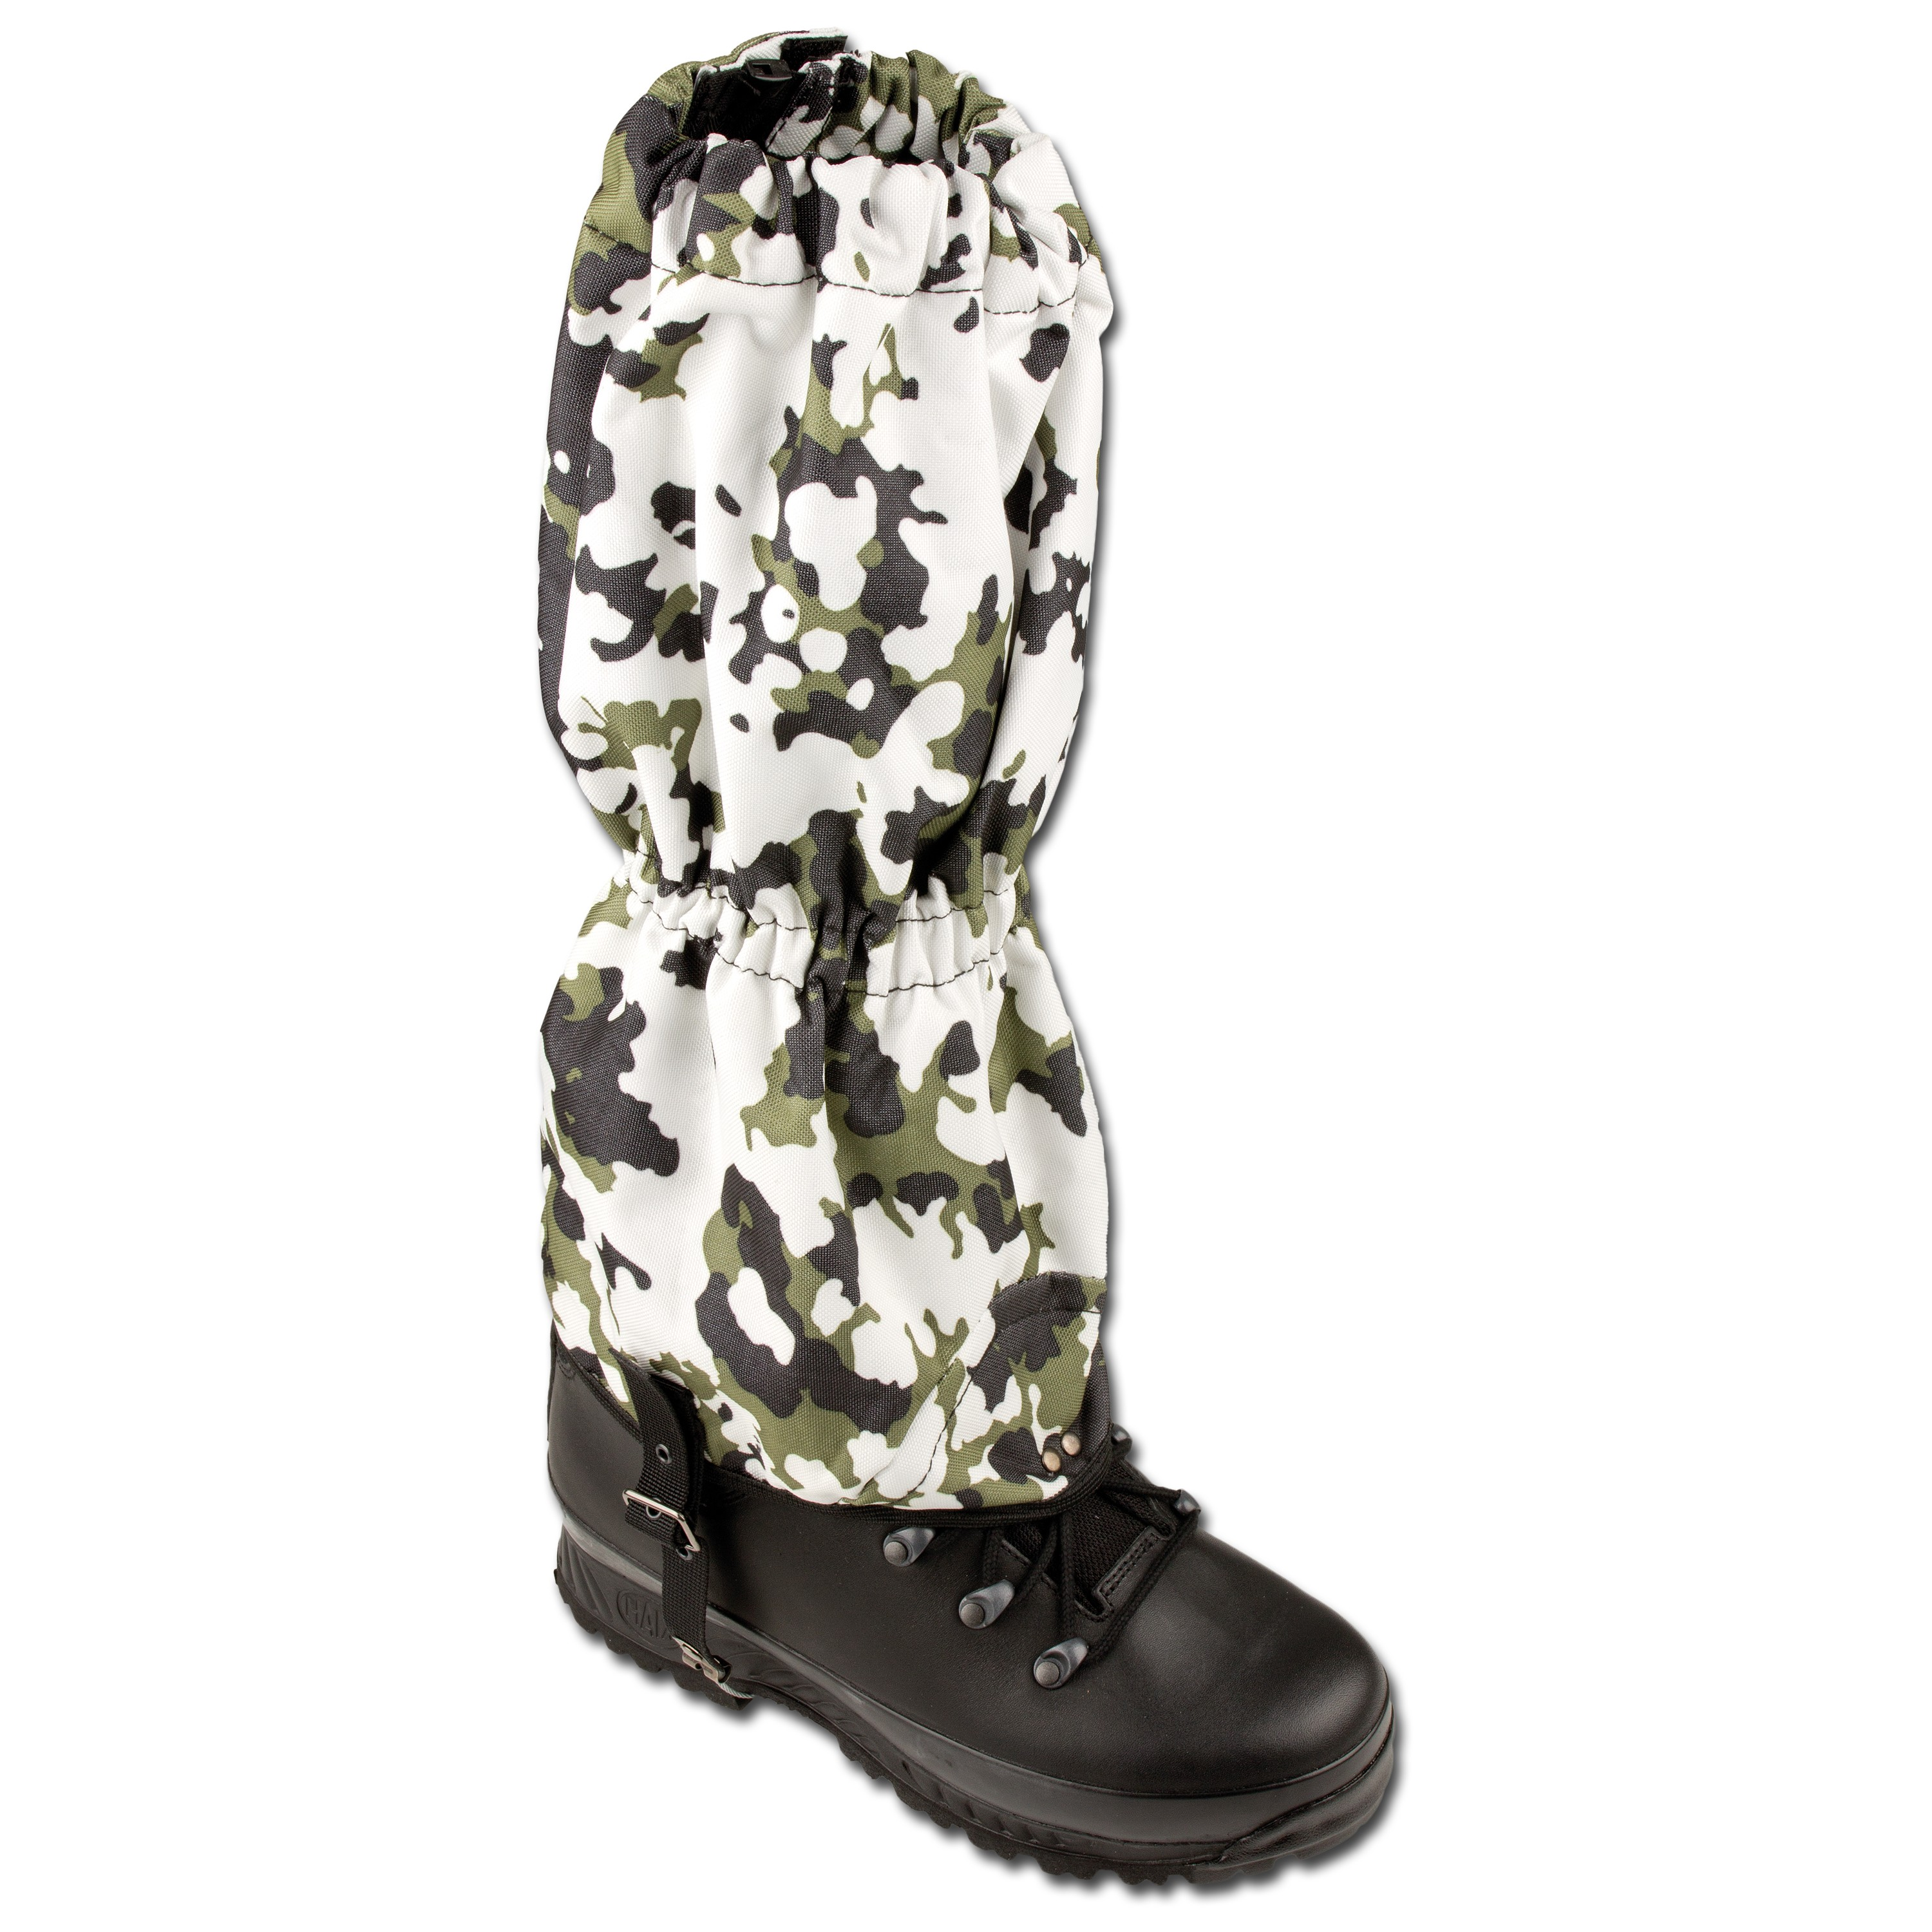 Wet Weather Gaiters with Steel Cable snow camo